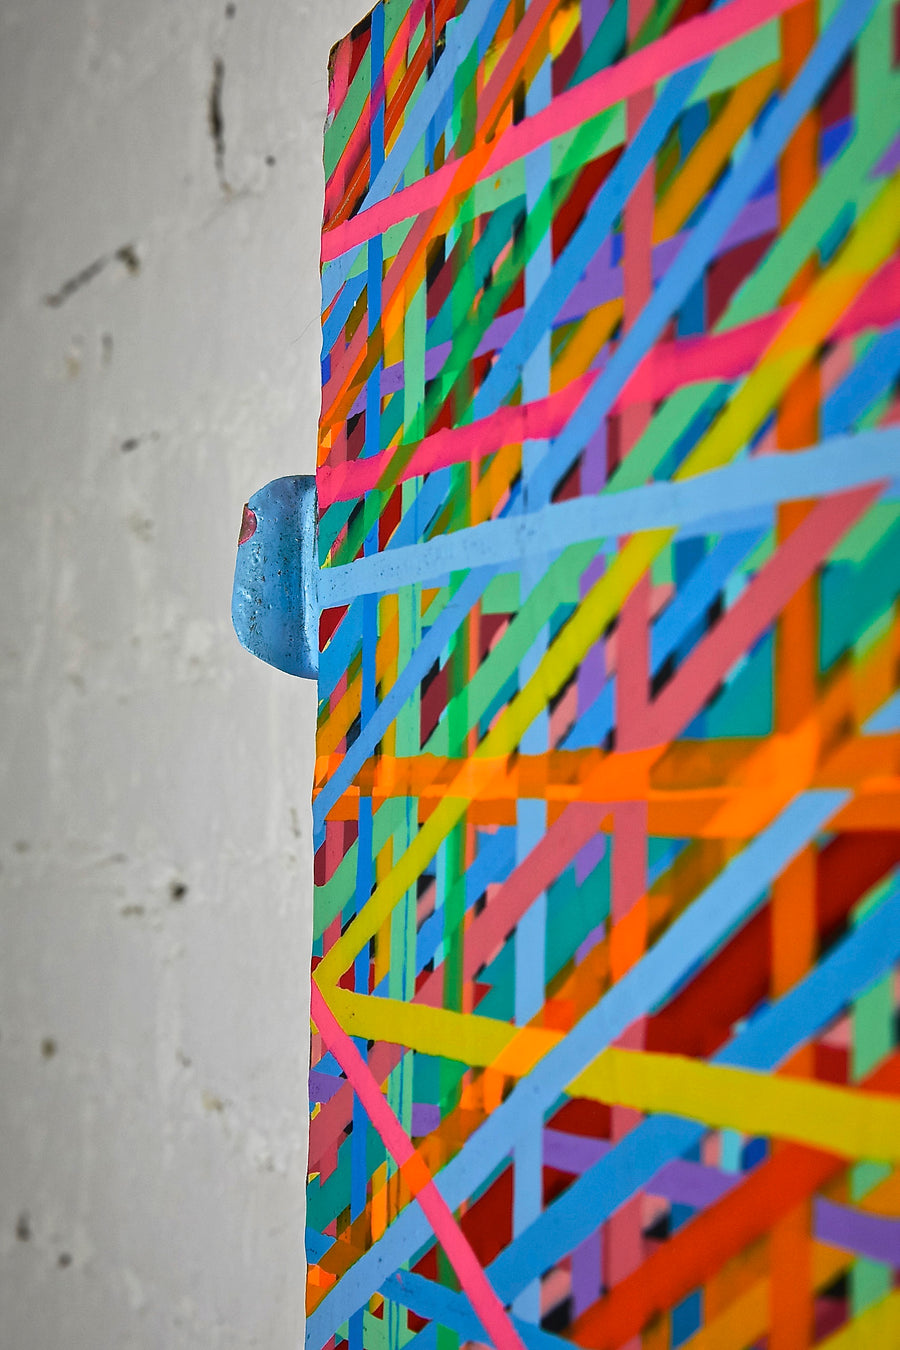 Detail shot of multicolor rainbow abstract drip painting by New York based artist Jon James. Represented by fine art gallery Tuleste Factory in Chelsea, NYC.